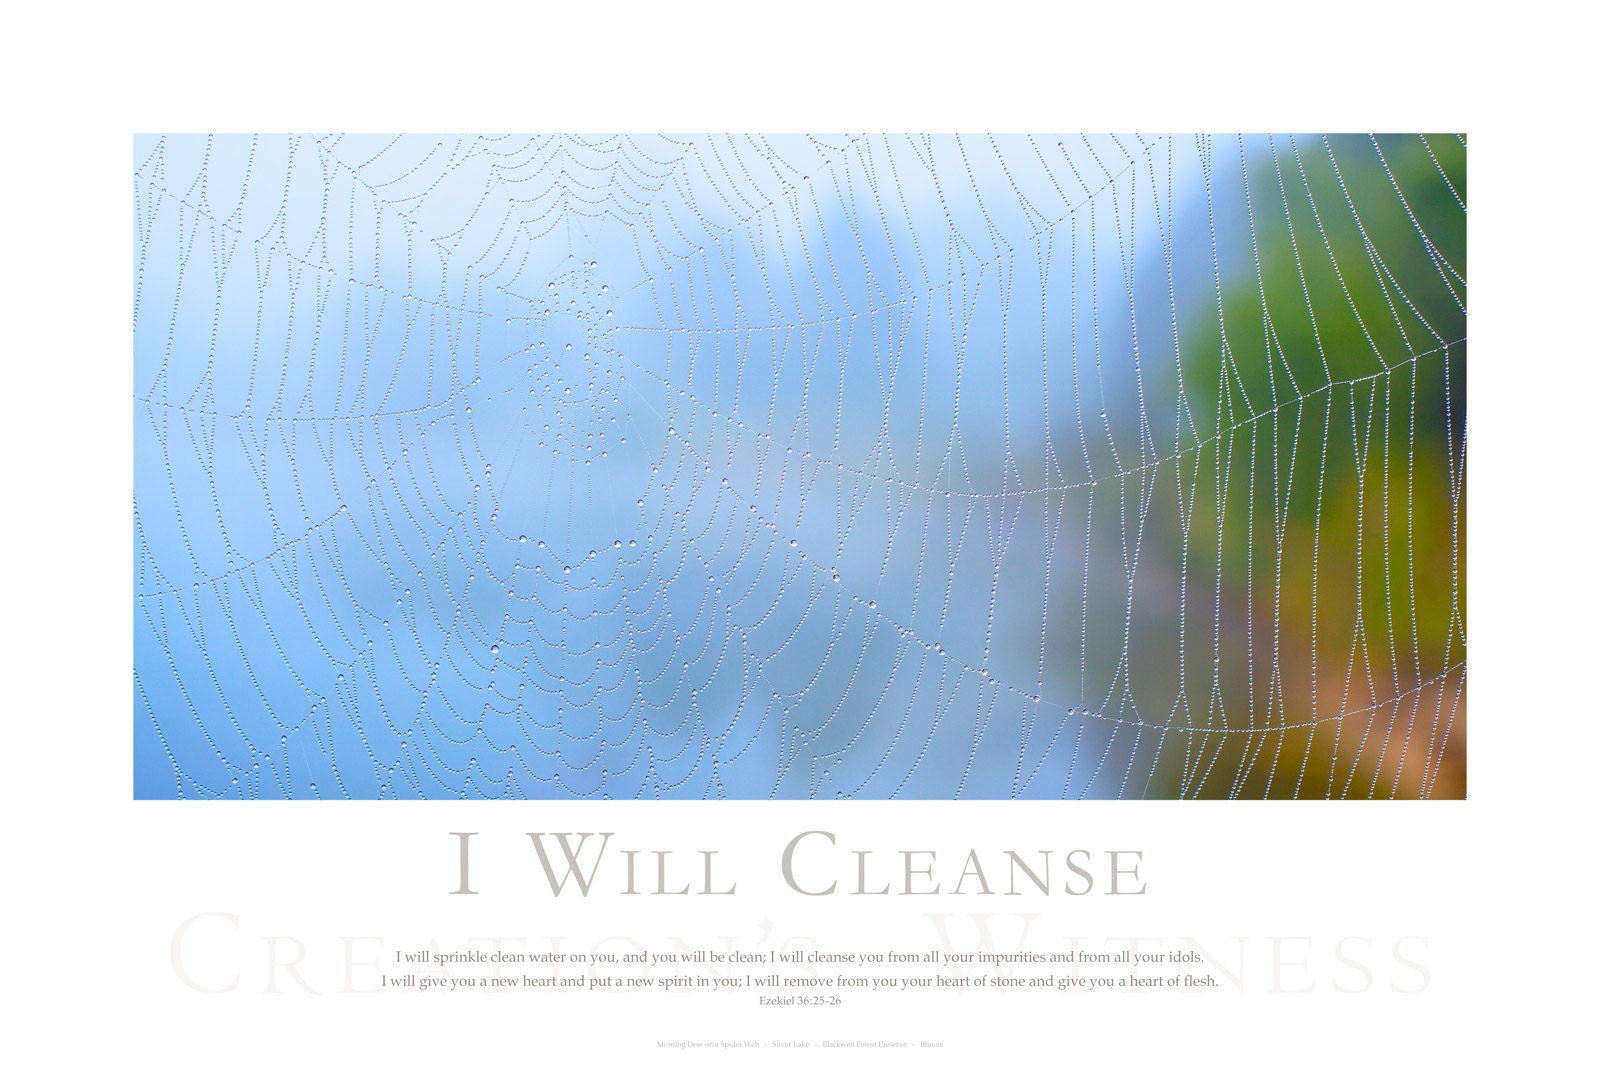 I will sprinkle clean water on you, and you will be clean; I will cleanse you from all your impurities and from all your idols...